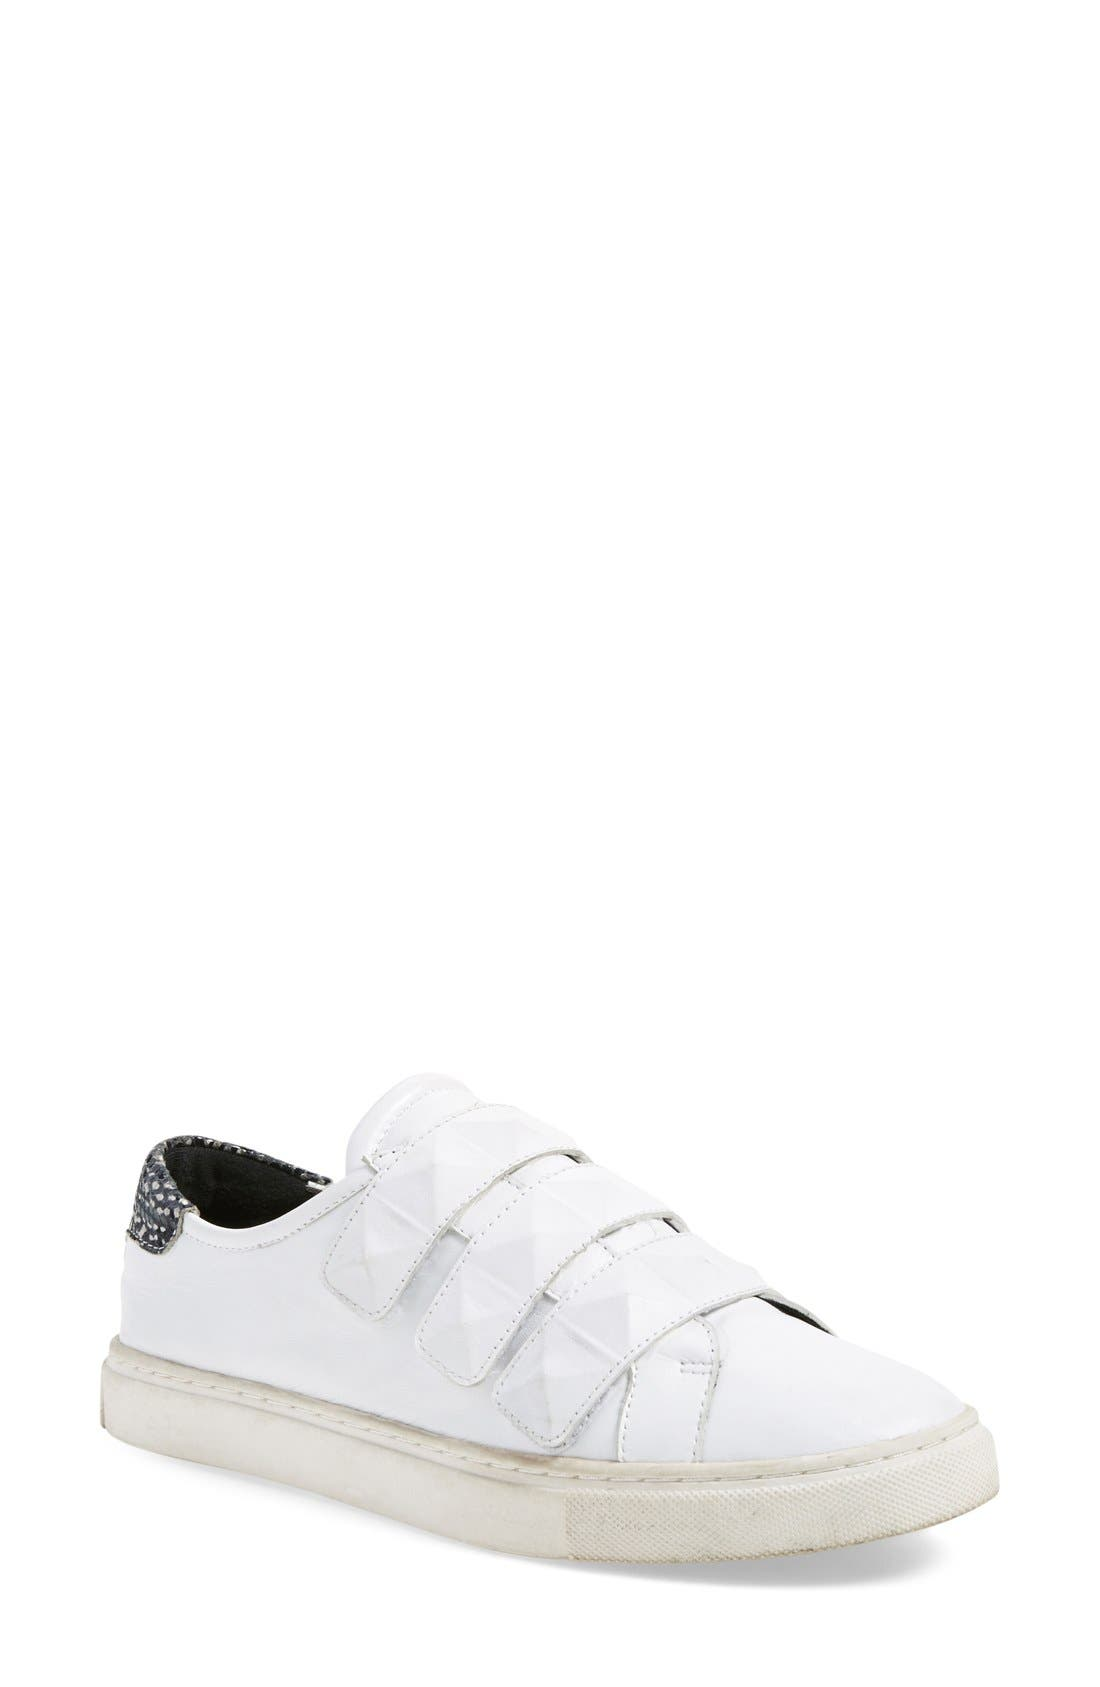 Alternate Image 1 Selected - Rebecca Minkoff 'Becky' Embellished Sneaker (Women)